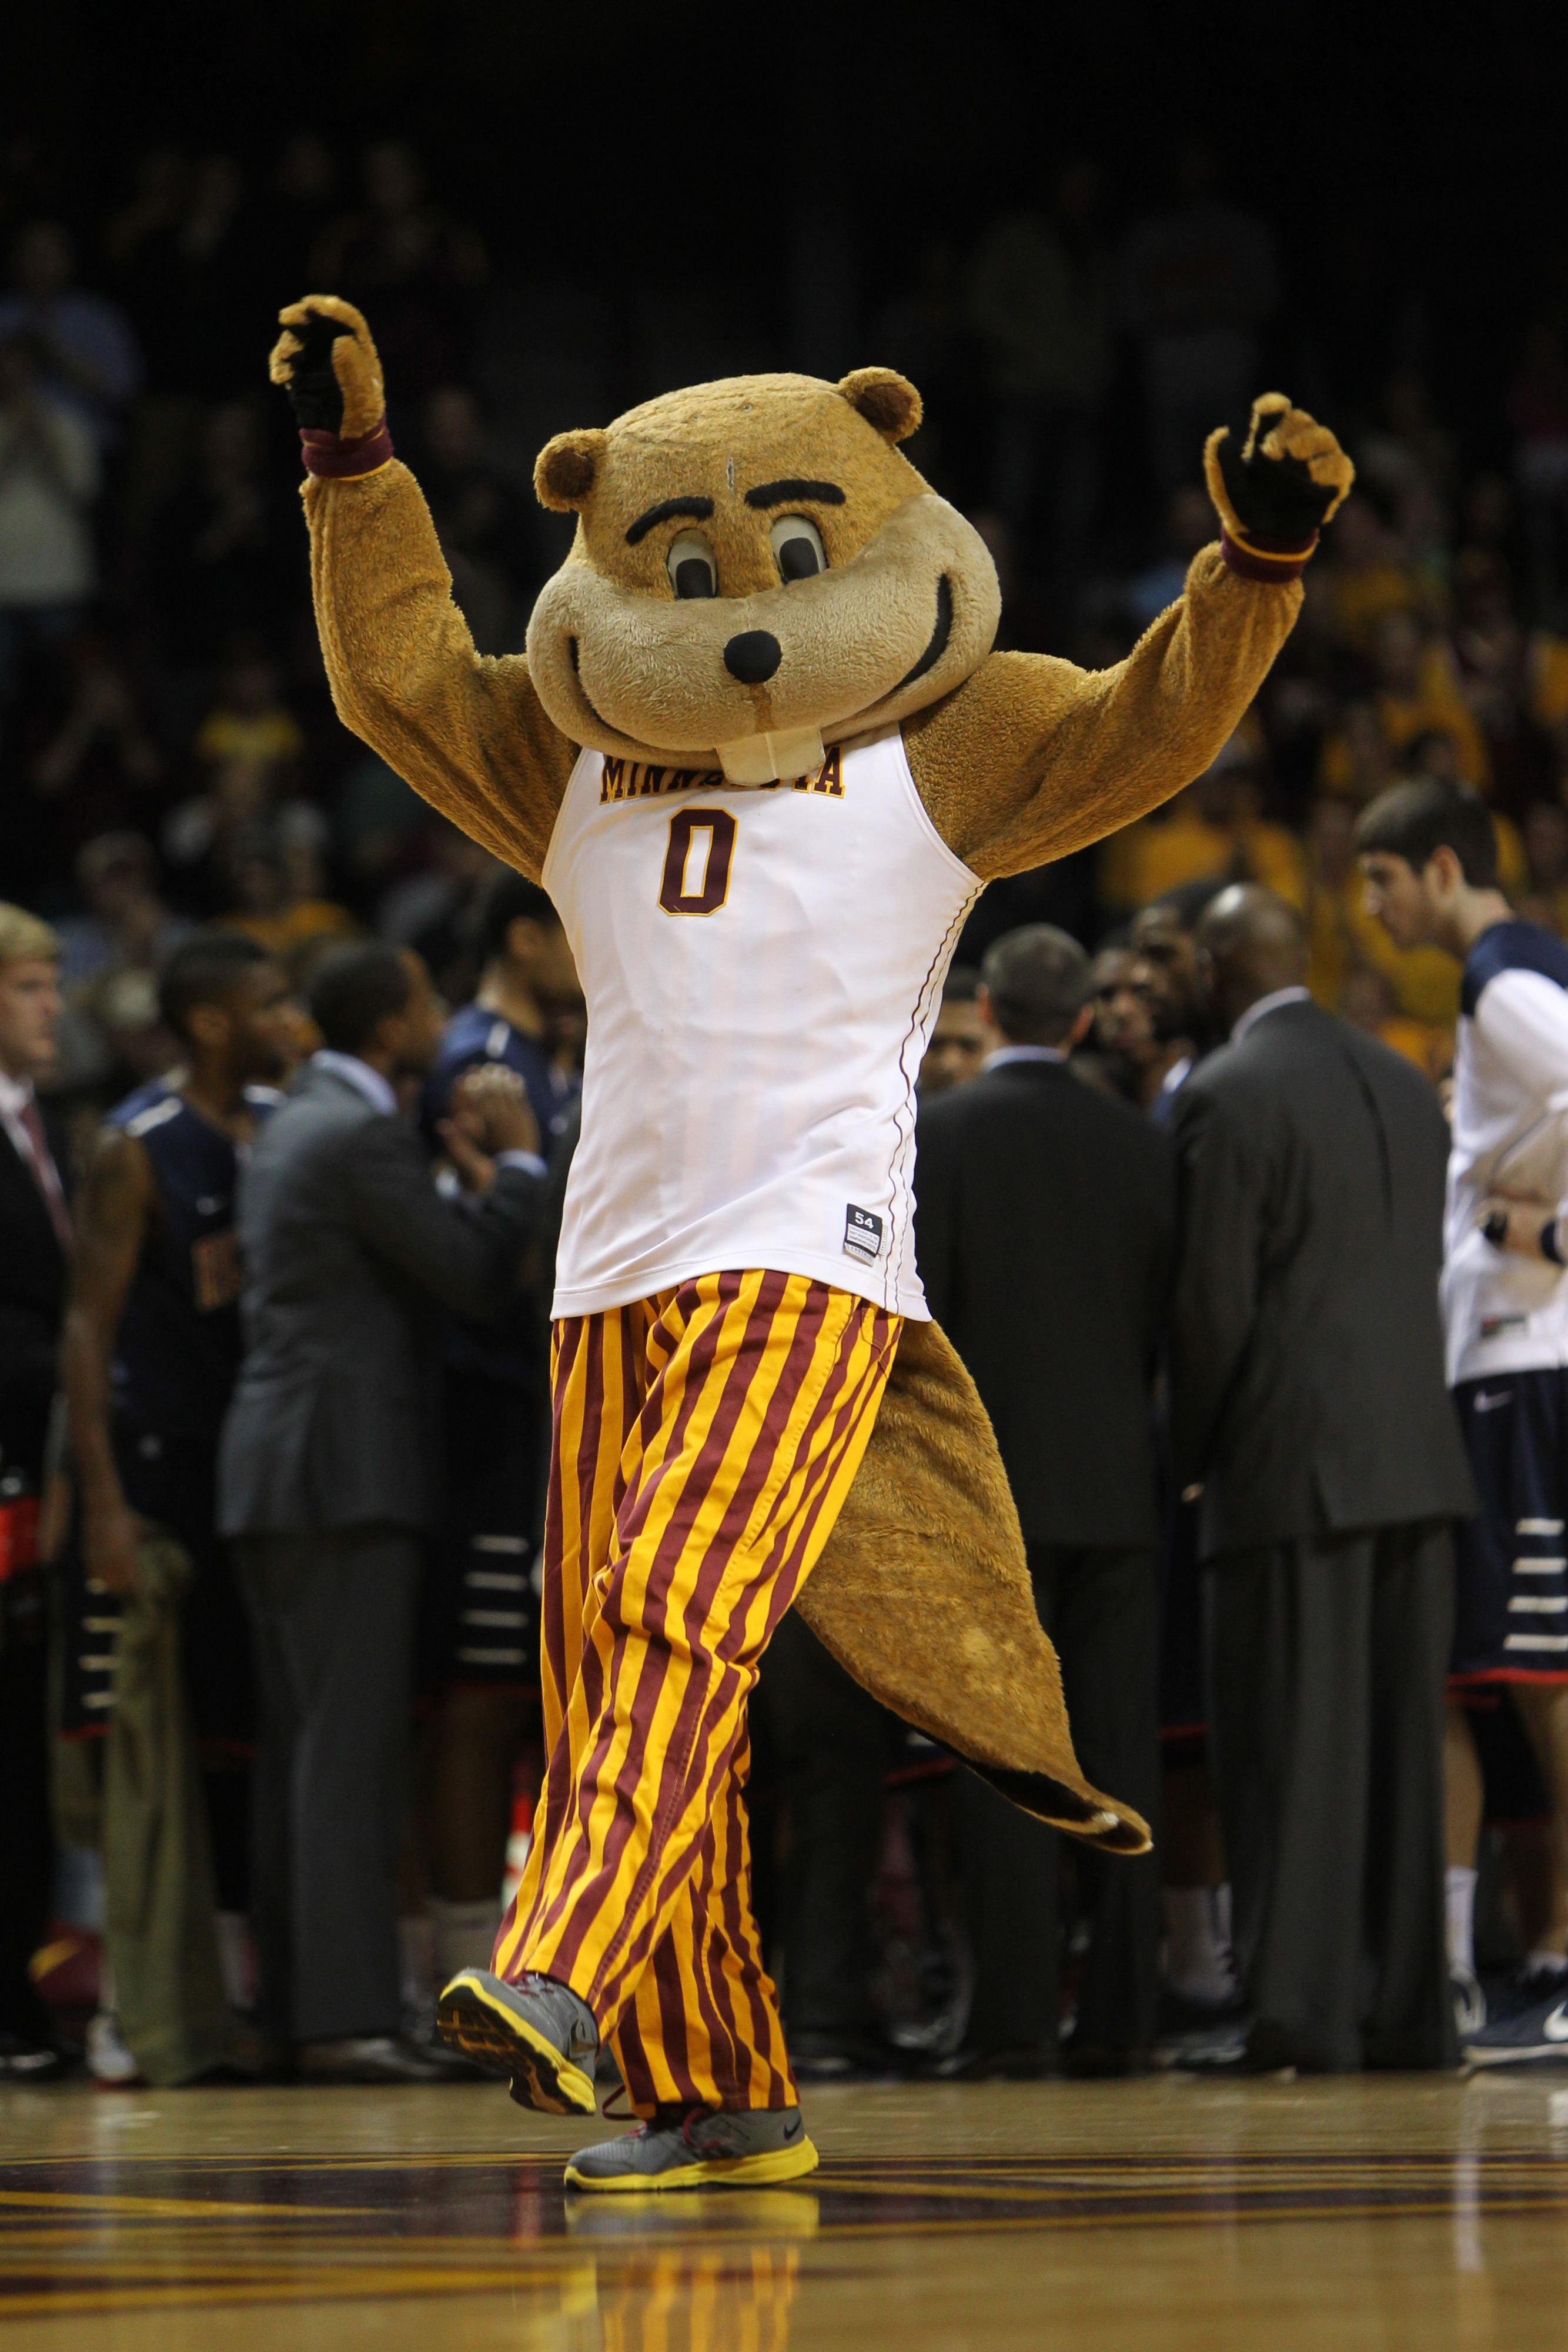 IT'S NOT THE BASKETBALL GOPHER, DAMMIT. IT'S THE SAME GOPHER WITH DIFFERENT CLOTHES! KILL IT! KILL IT BADLY!